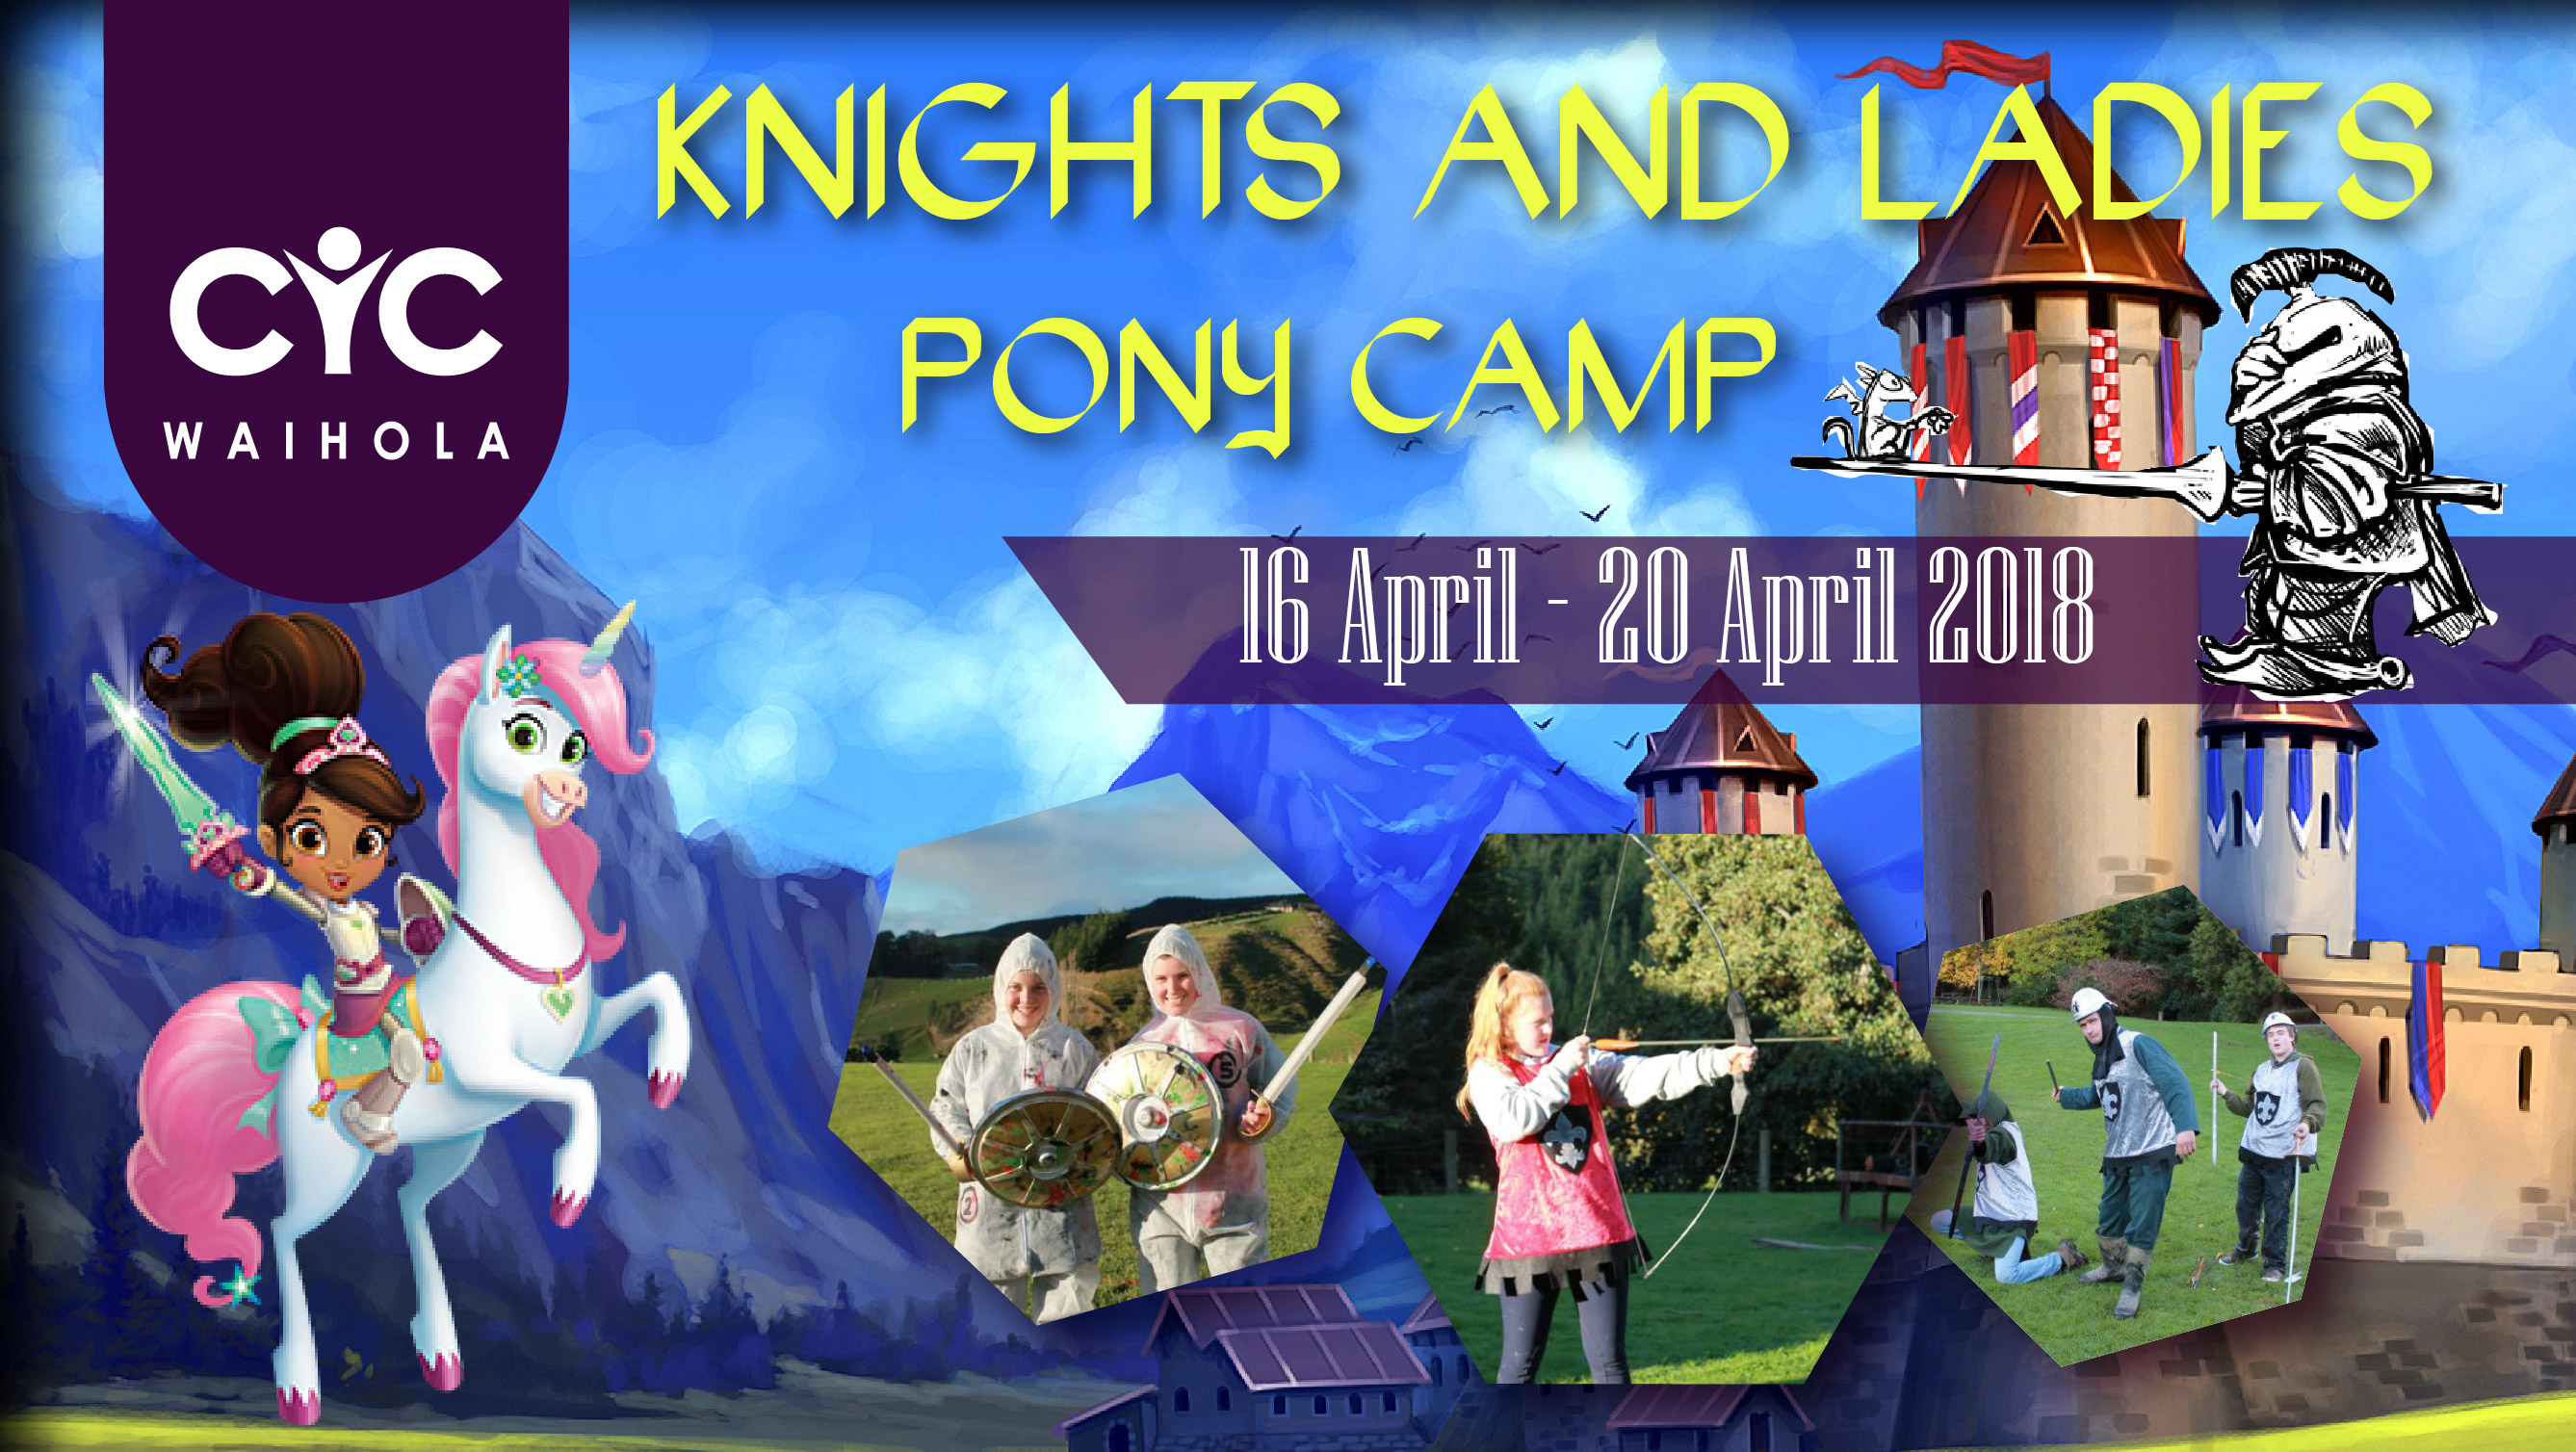 2018 Pony Camp: Knights and Ladies